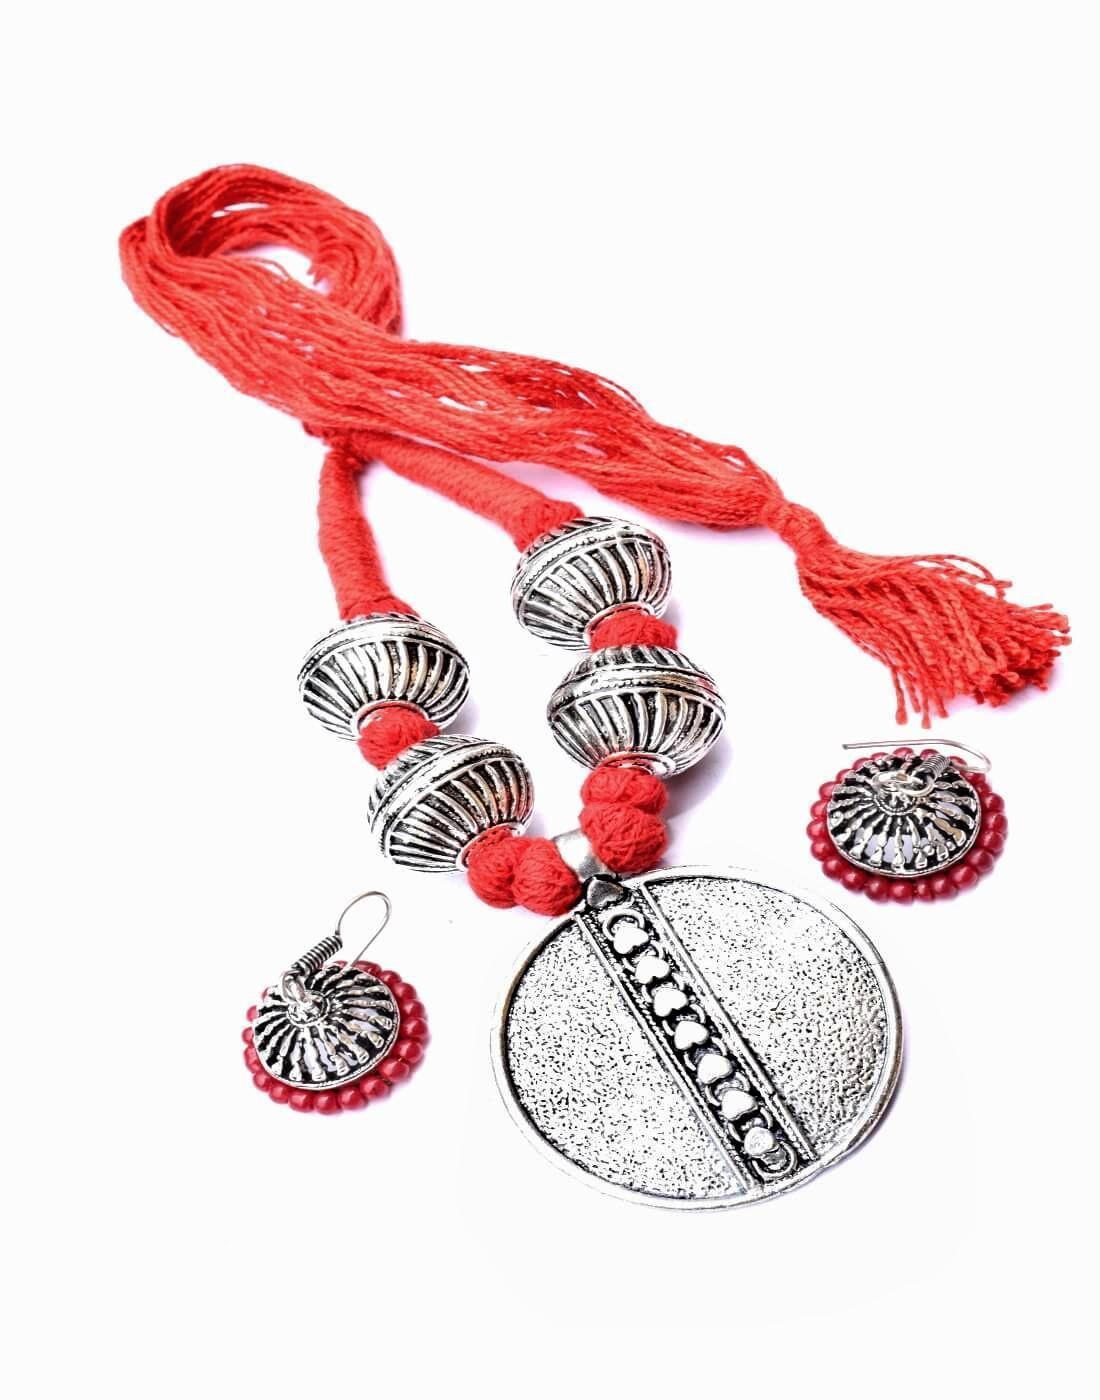 Threaded German Silver Necklace Set -Red